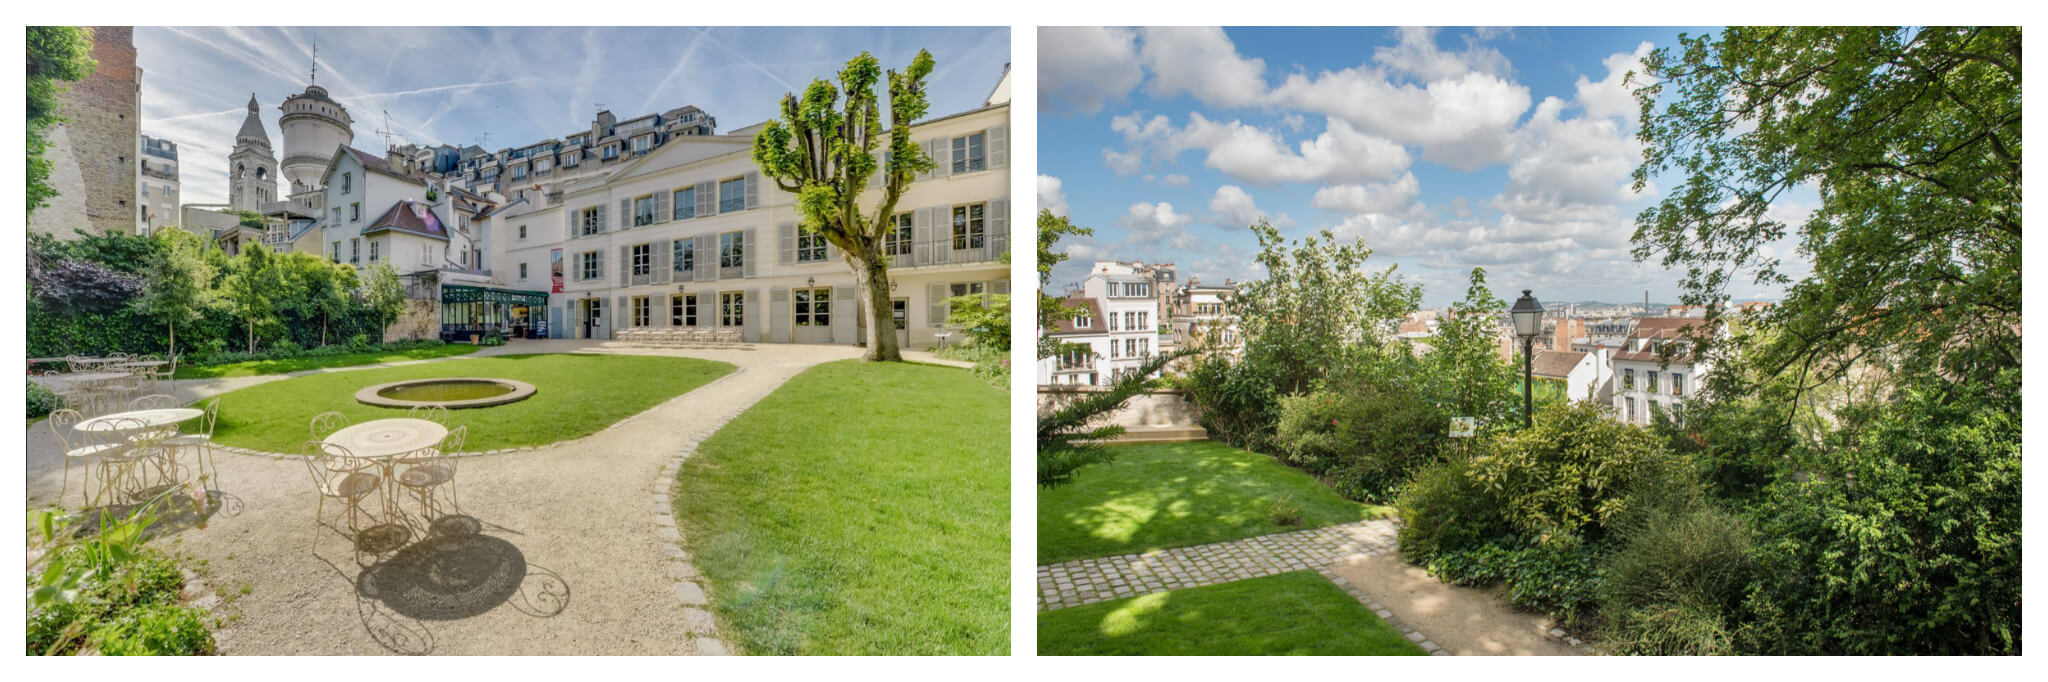 Left and right, the garden of the Musée Montmartre in Paris, featuring the oldest house in the area.